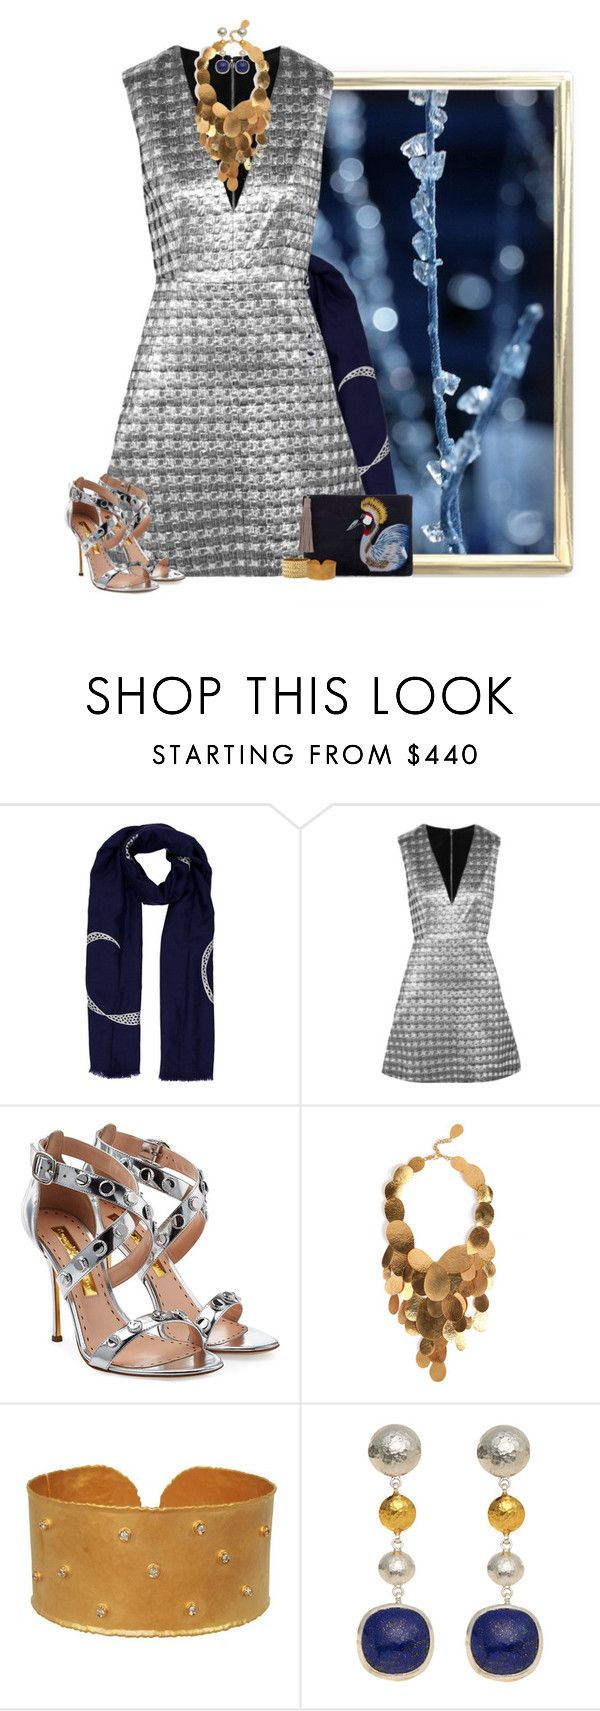 """sparkle & shine"" by niteowlgirl ❤ liked on Polyvore featuring House of Waris, Alice + Olivia, Rupert Sanderson, Hervé Van Der Straeten, Marika and Gurhan"